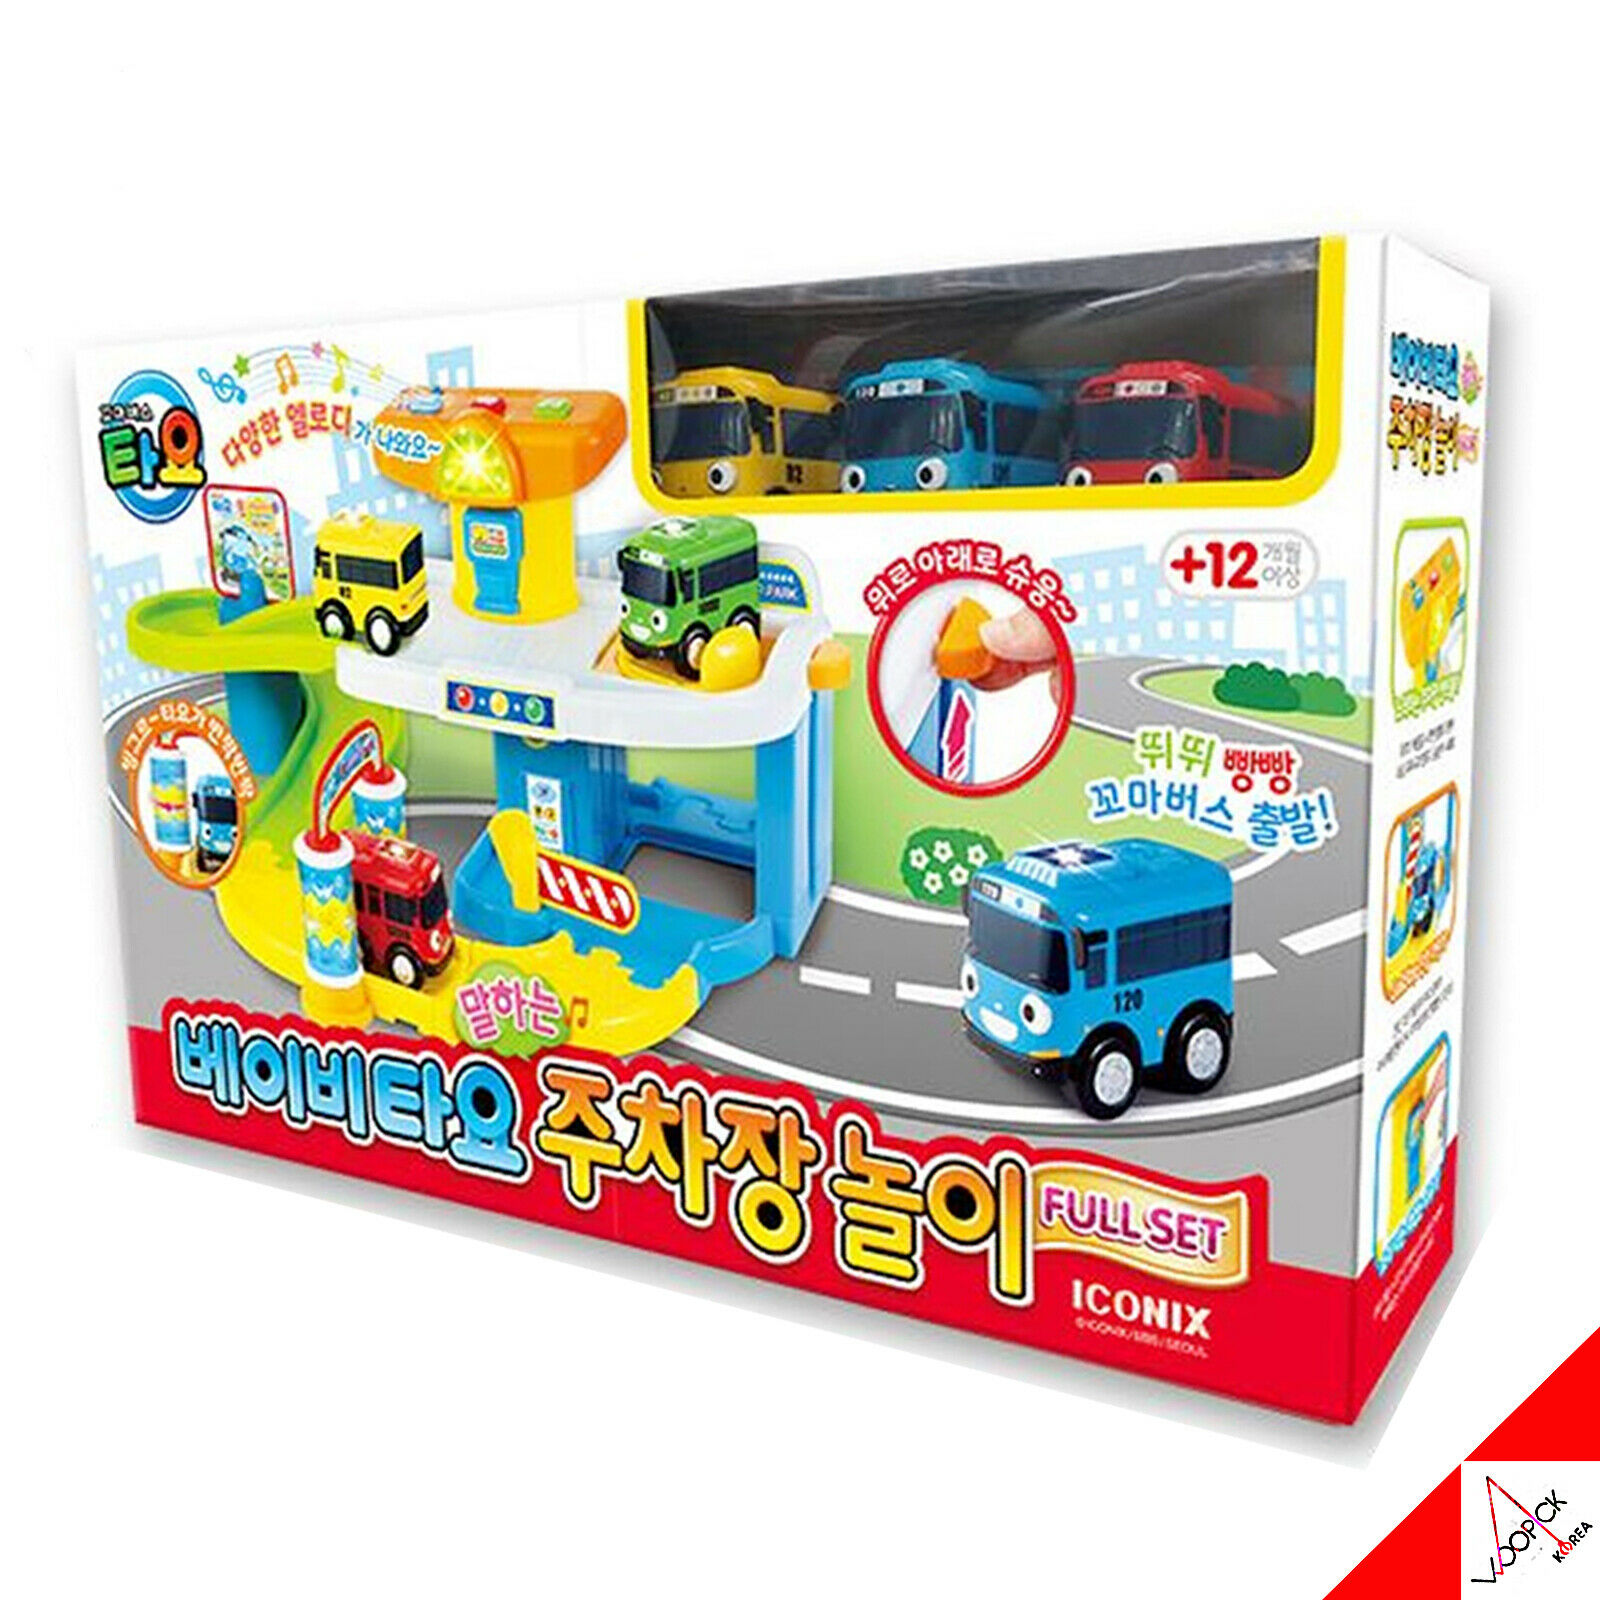 TAYO Little Bus Baby Car Ver. Talking Garage Play Full Set with 3-Mini Cars